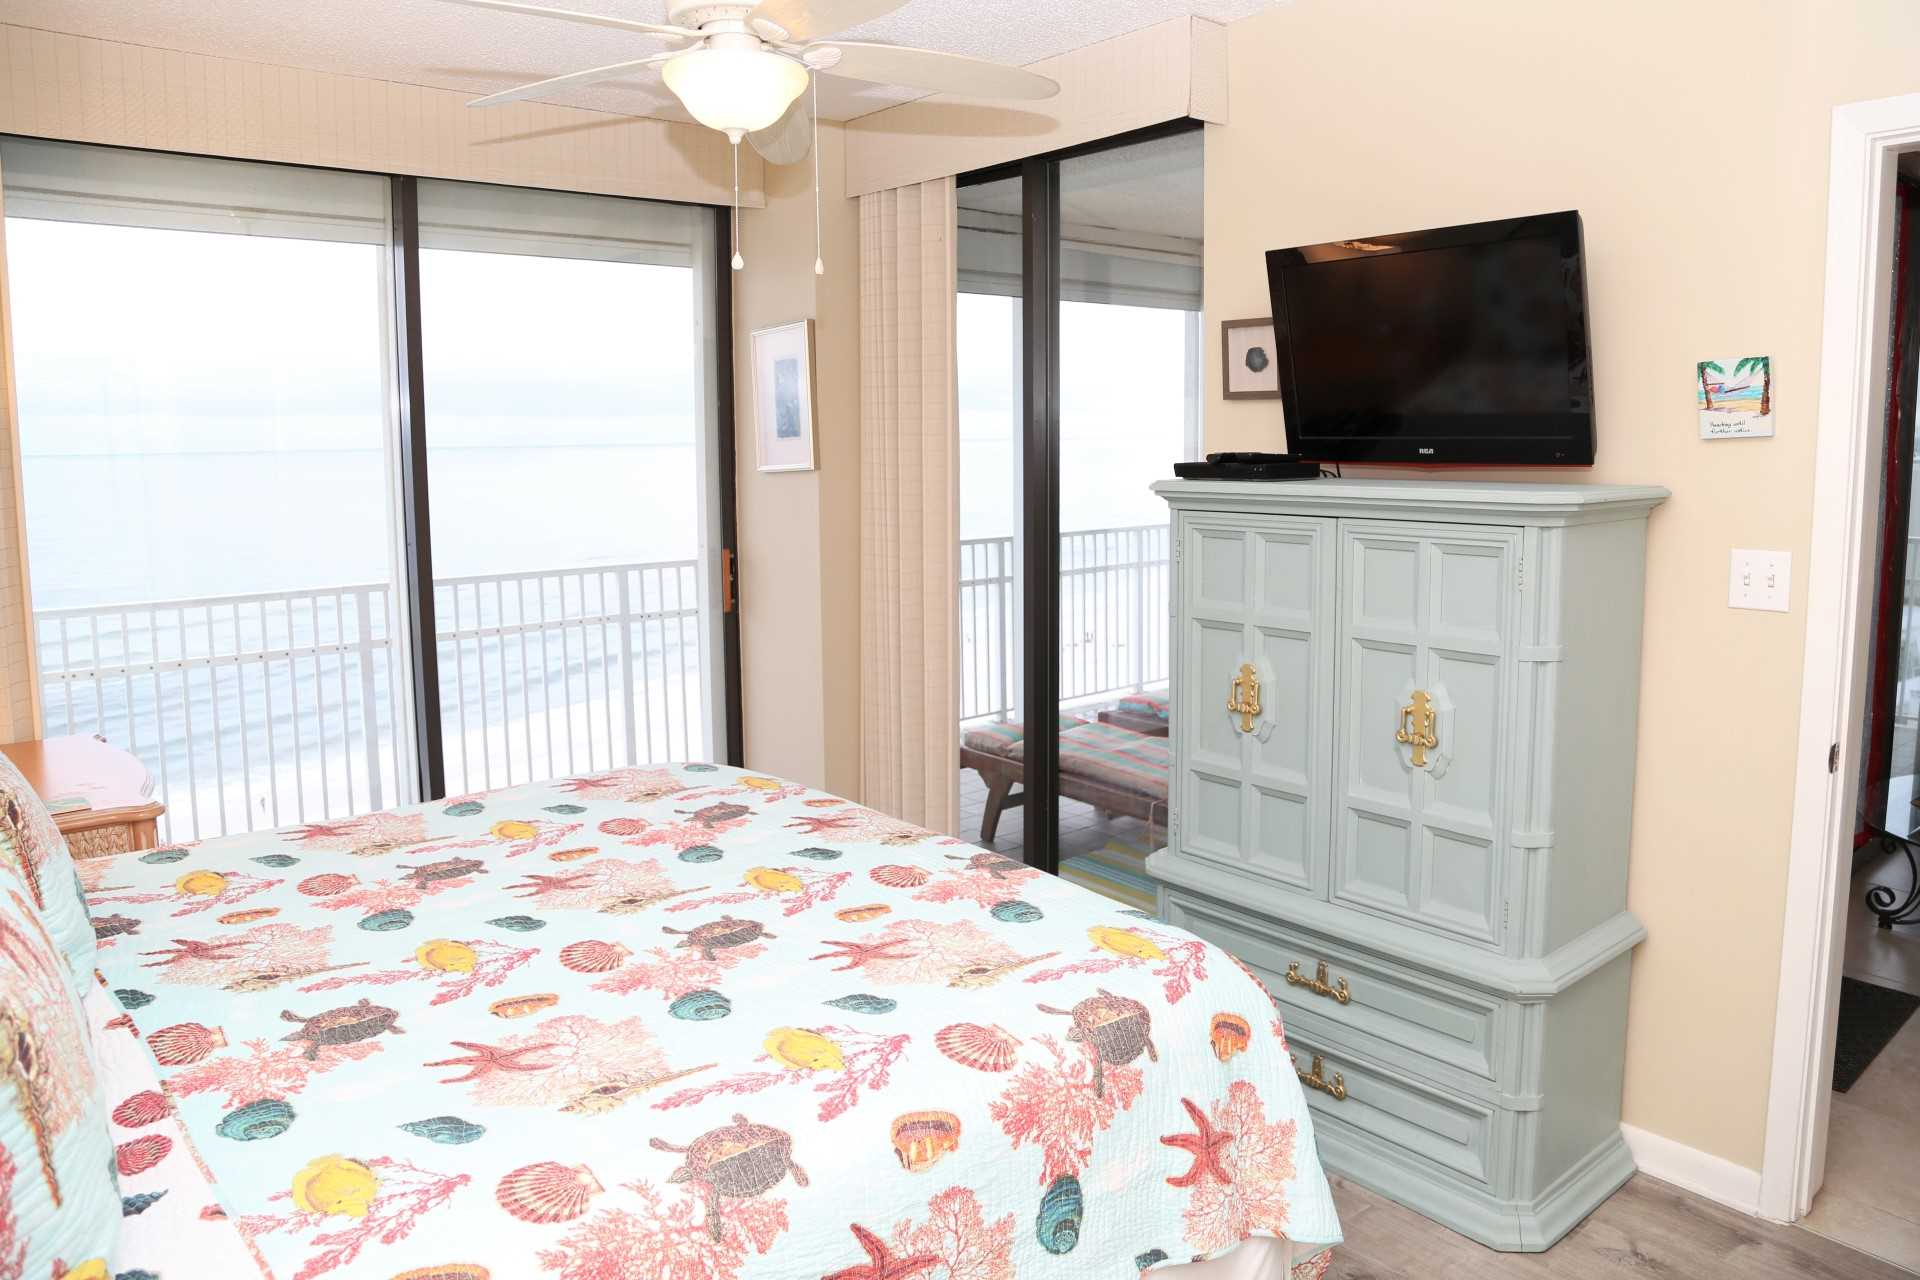 The master bedroom with cable TV, dresser, and access to bal